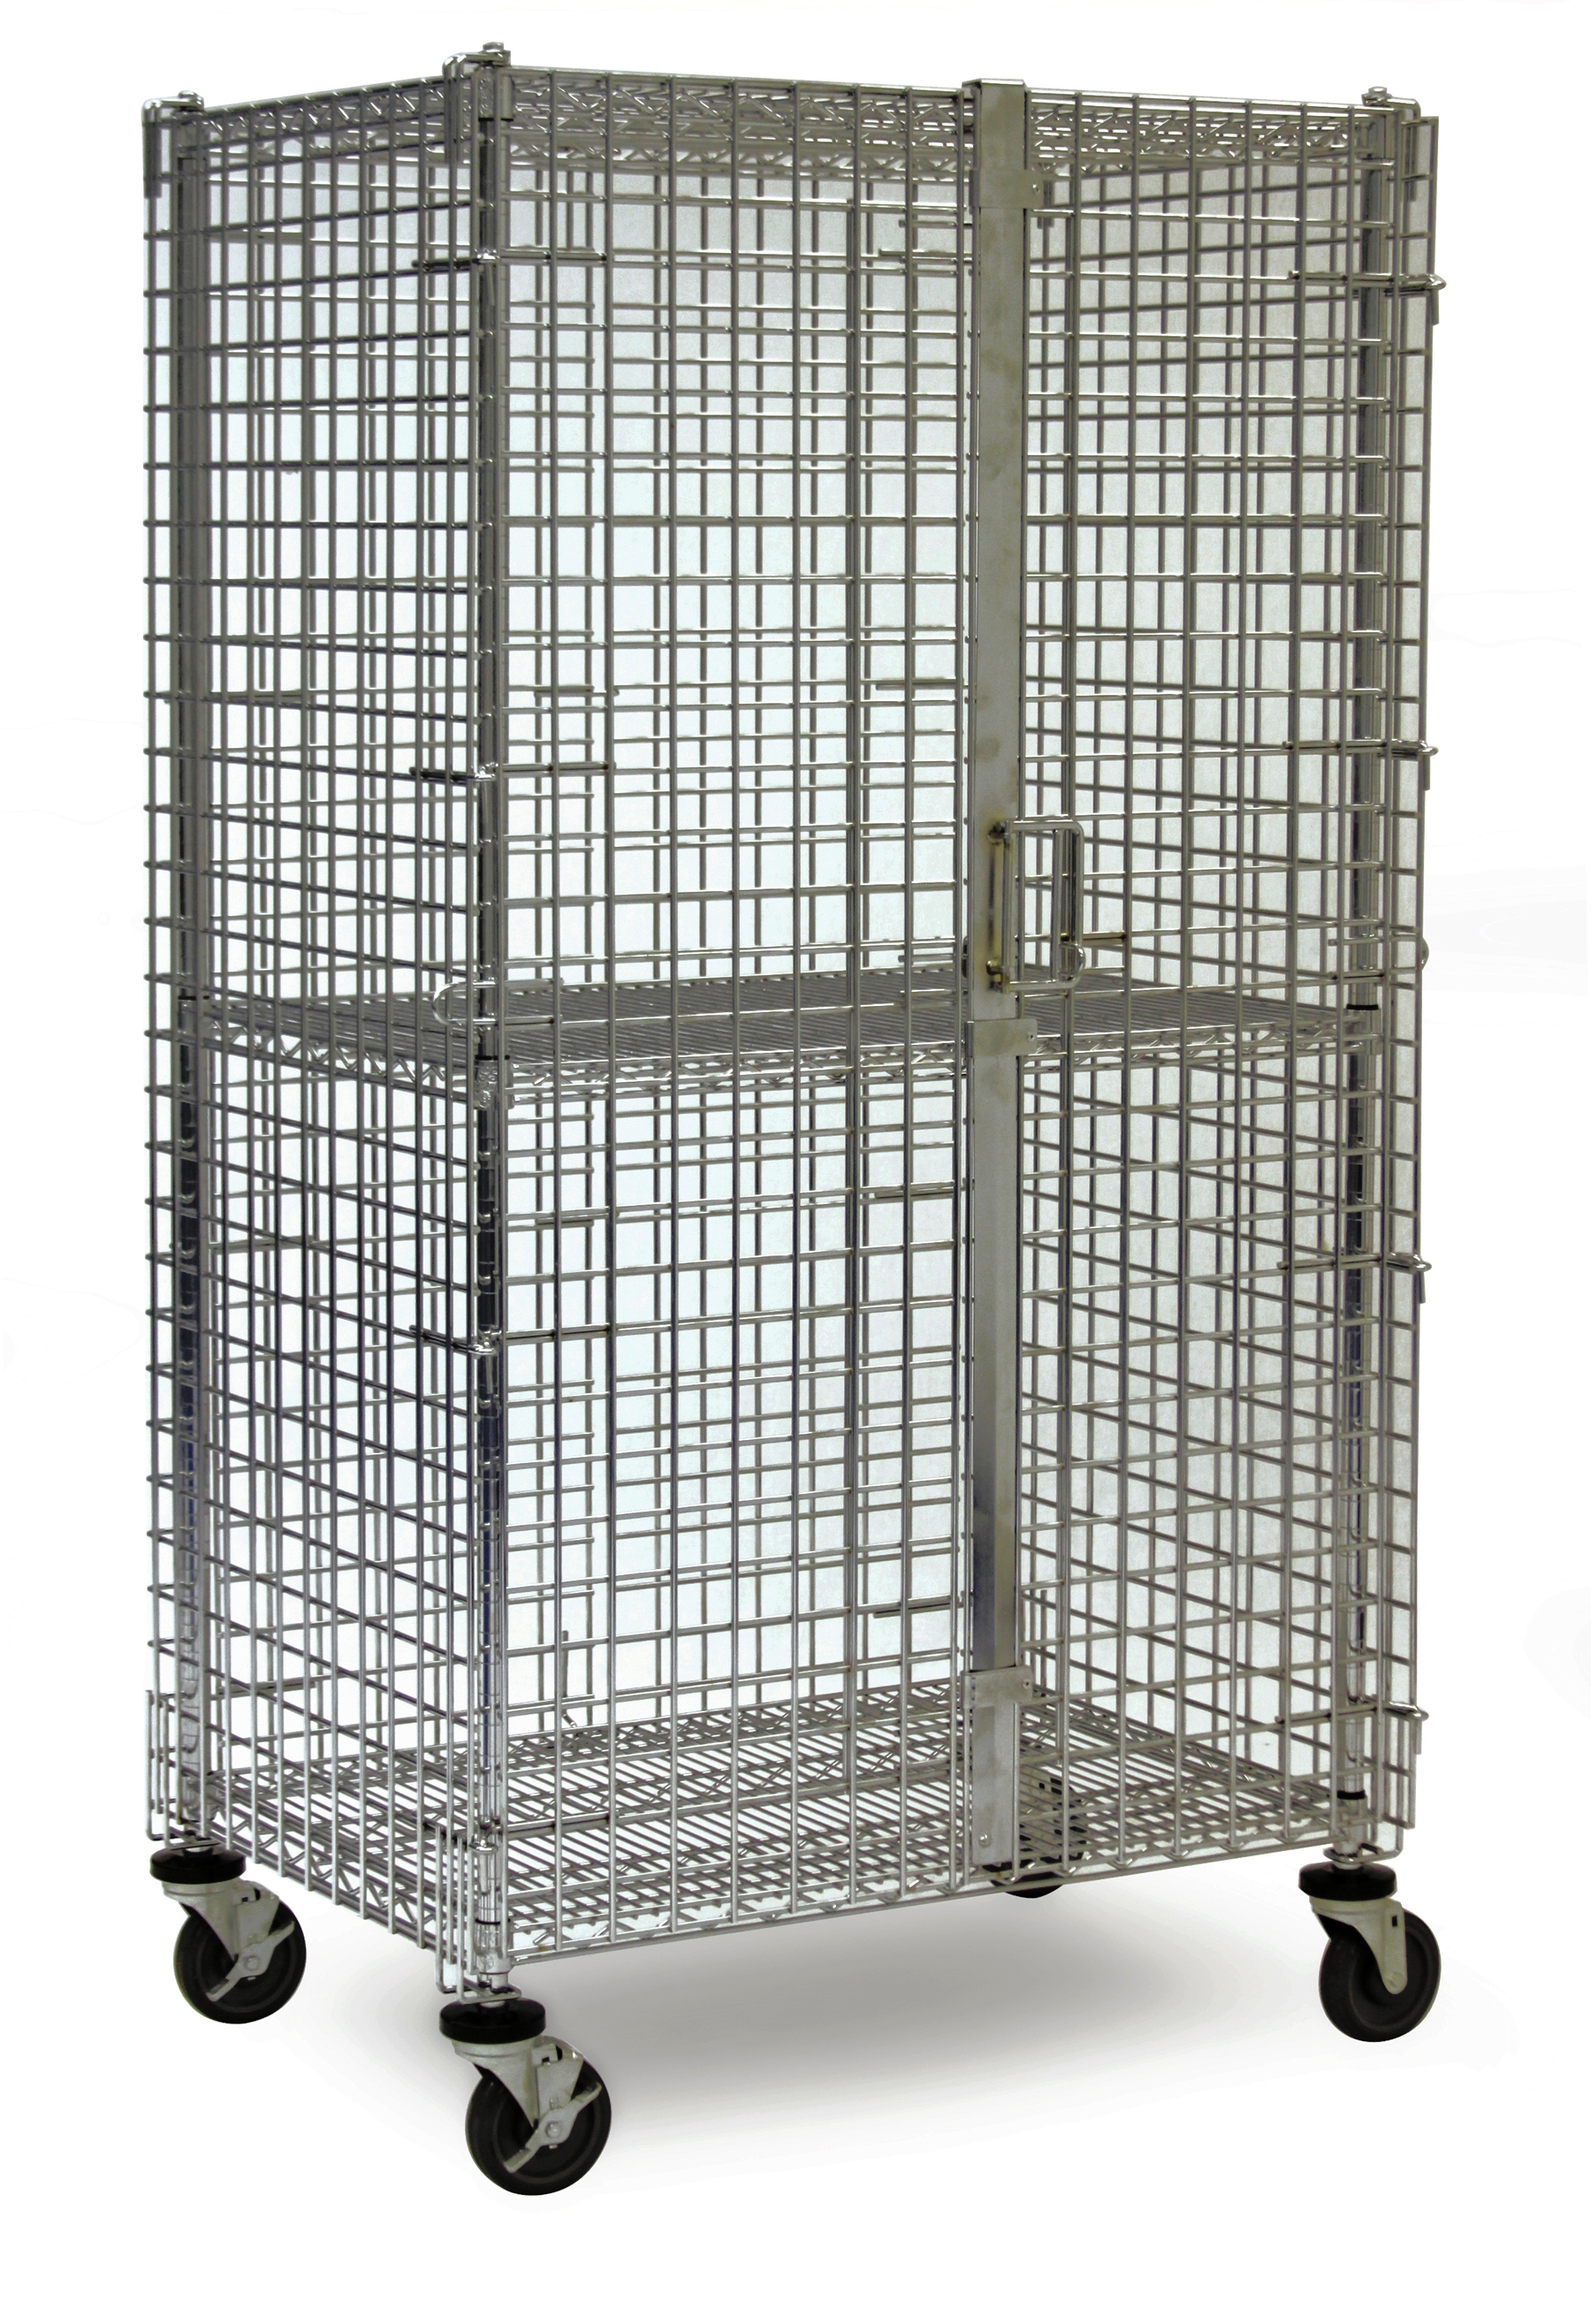 healthcare security cart